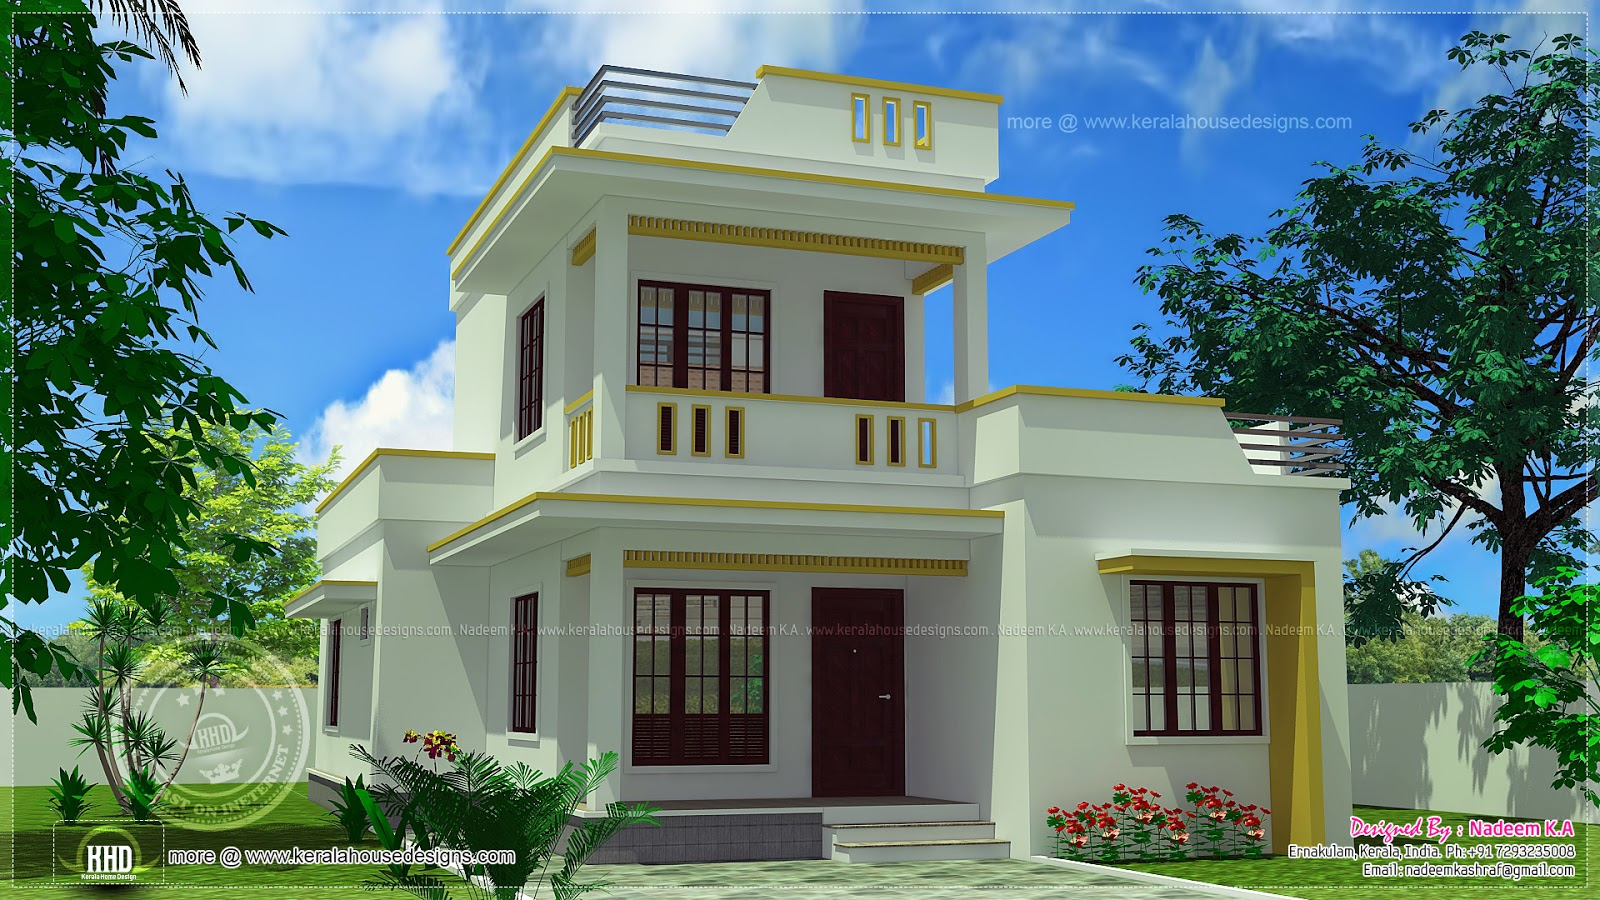 Simple flt roof home design in 1305 sq feet home kerala In home design